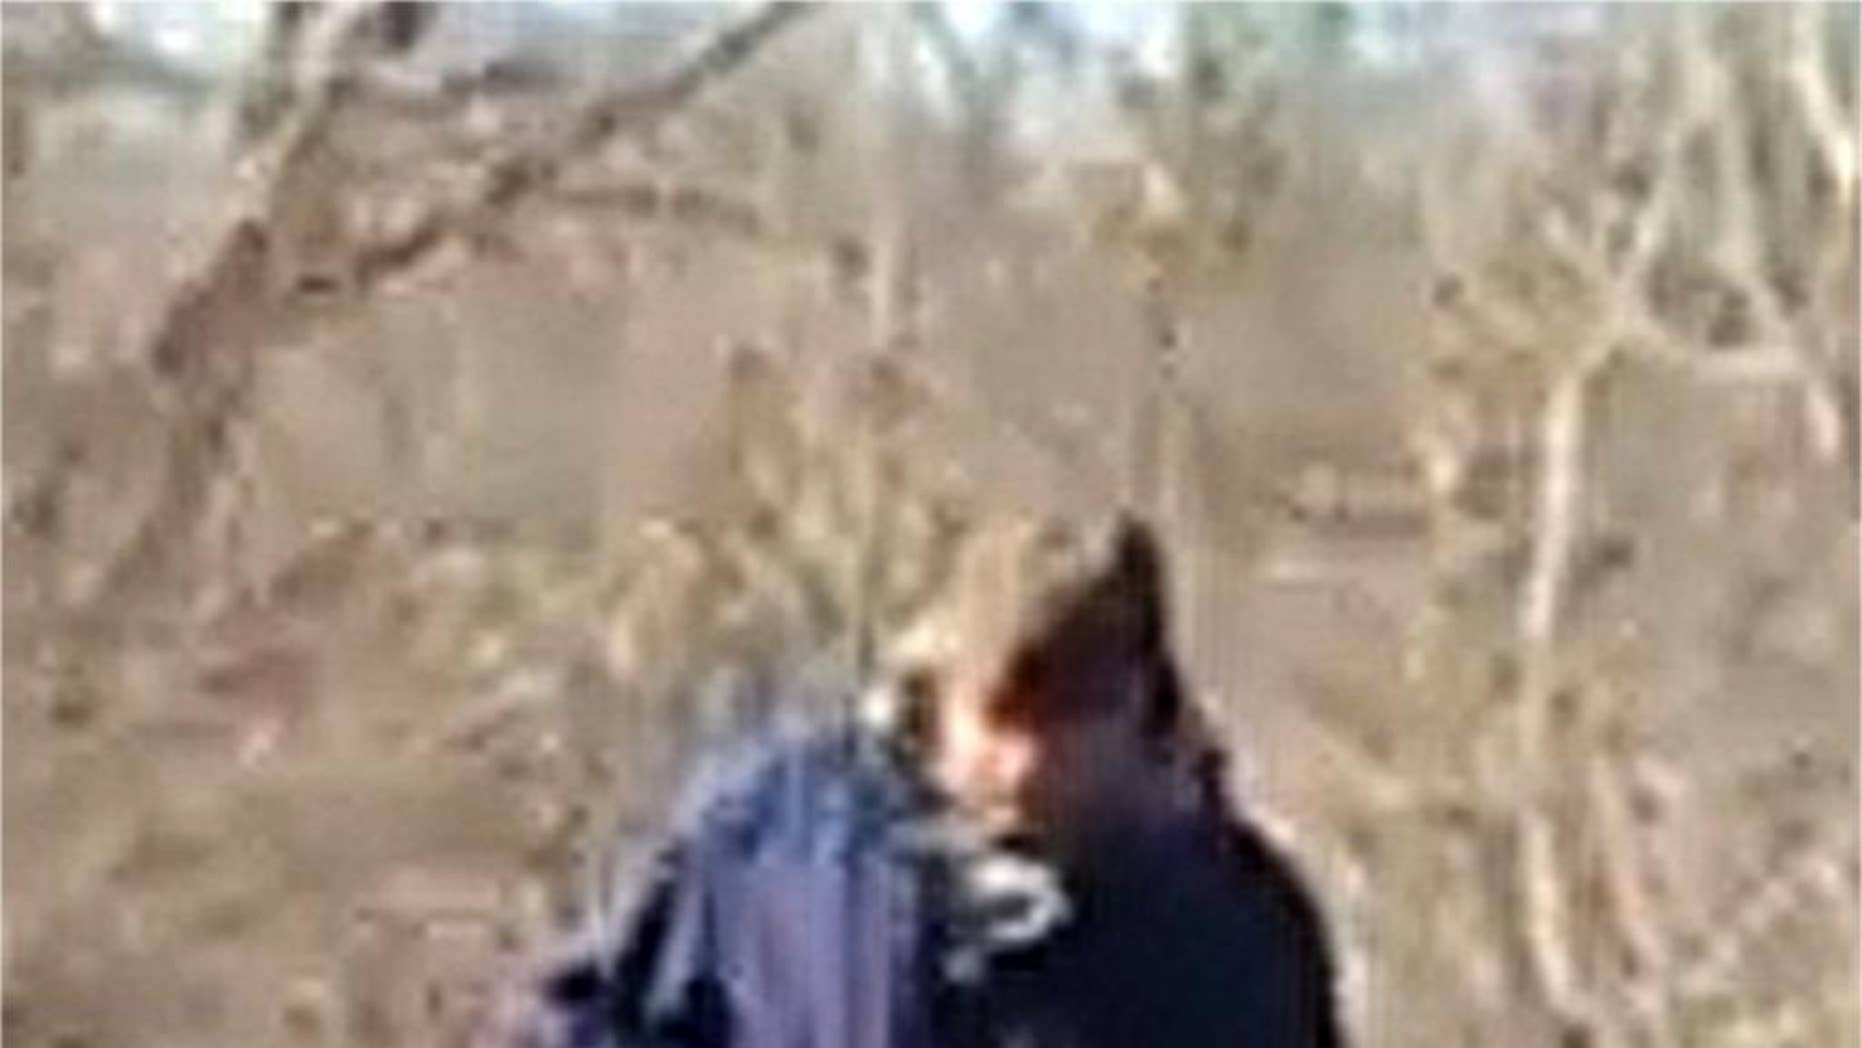 This Feb. 13, 2017, photo released by the Indiana State Police shows a man walking along the trail system in Delphi, Ind. Indiana authorities want to talk to the man in connection with the killings of two teenage girls. He was photographed on the trail system around the time Liberty German and Abigail Williams were dropped off Monday to go hiking. (Indiana State Police via AP)